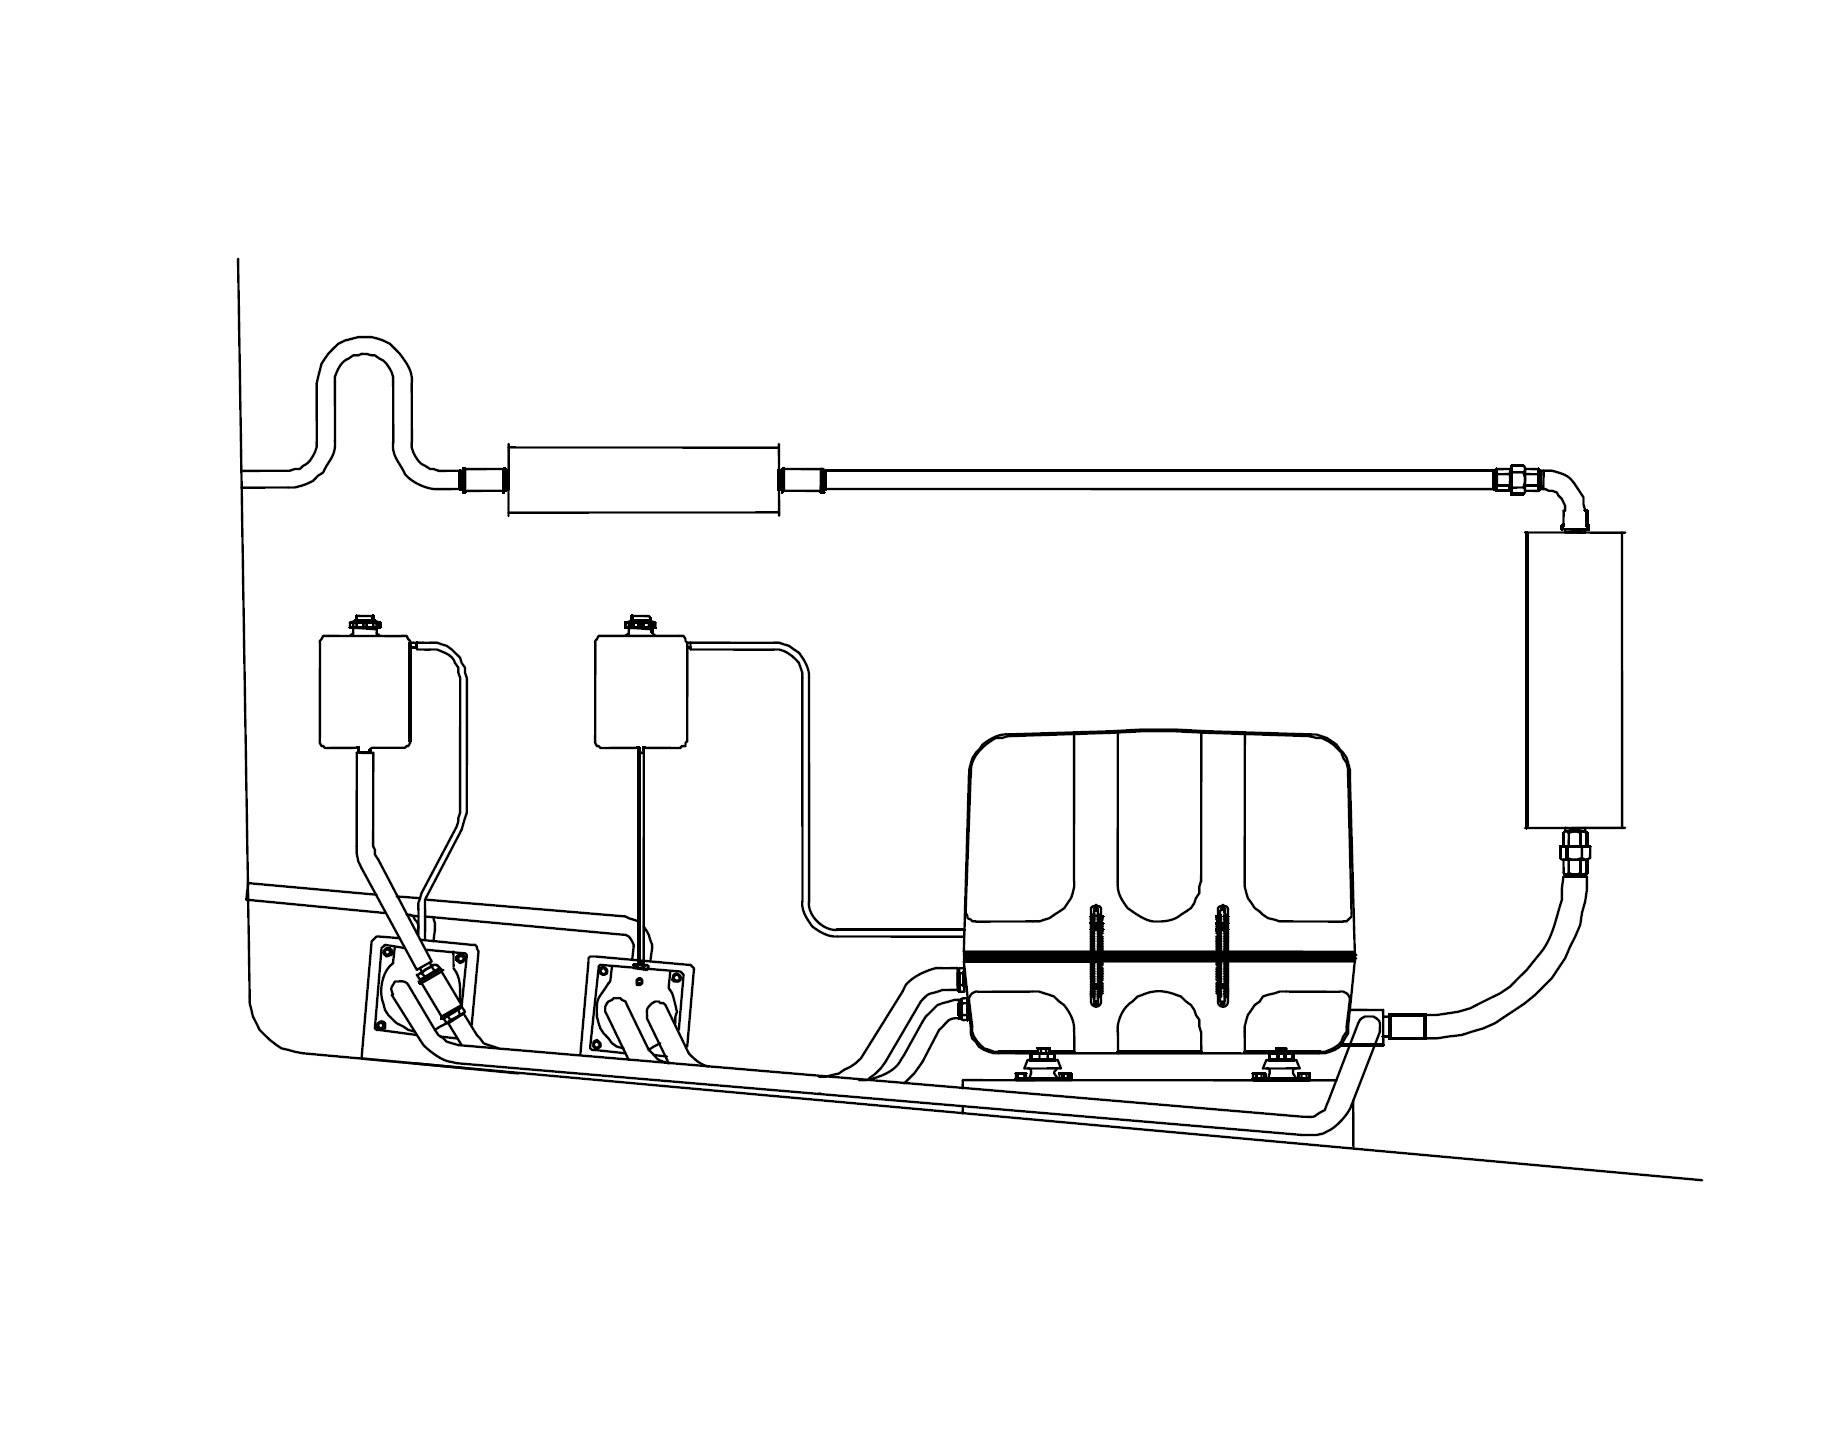 Plc Hardware Wiring Diagram additionally Boat Motor Diagrams in addition Inverter 12 Volt Wiring Diagram as well Plywood Shanty Boat together with Battery Isolator Wiring Diagram Using Diodes. on marine solar panels boat